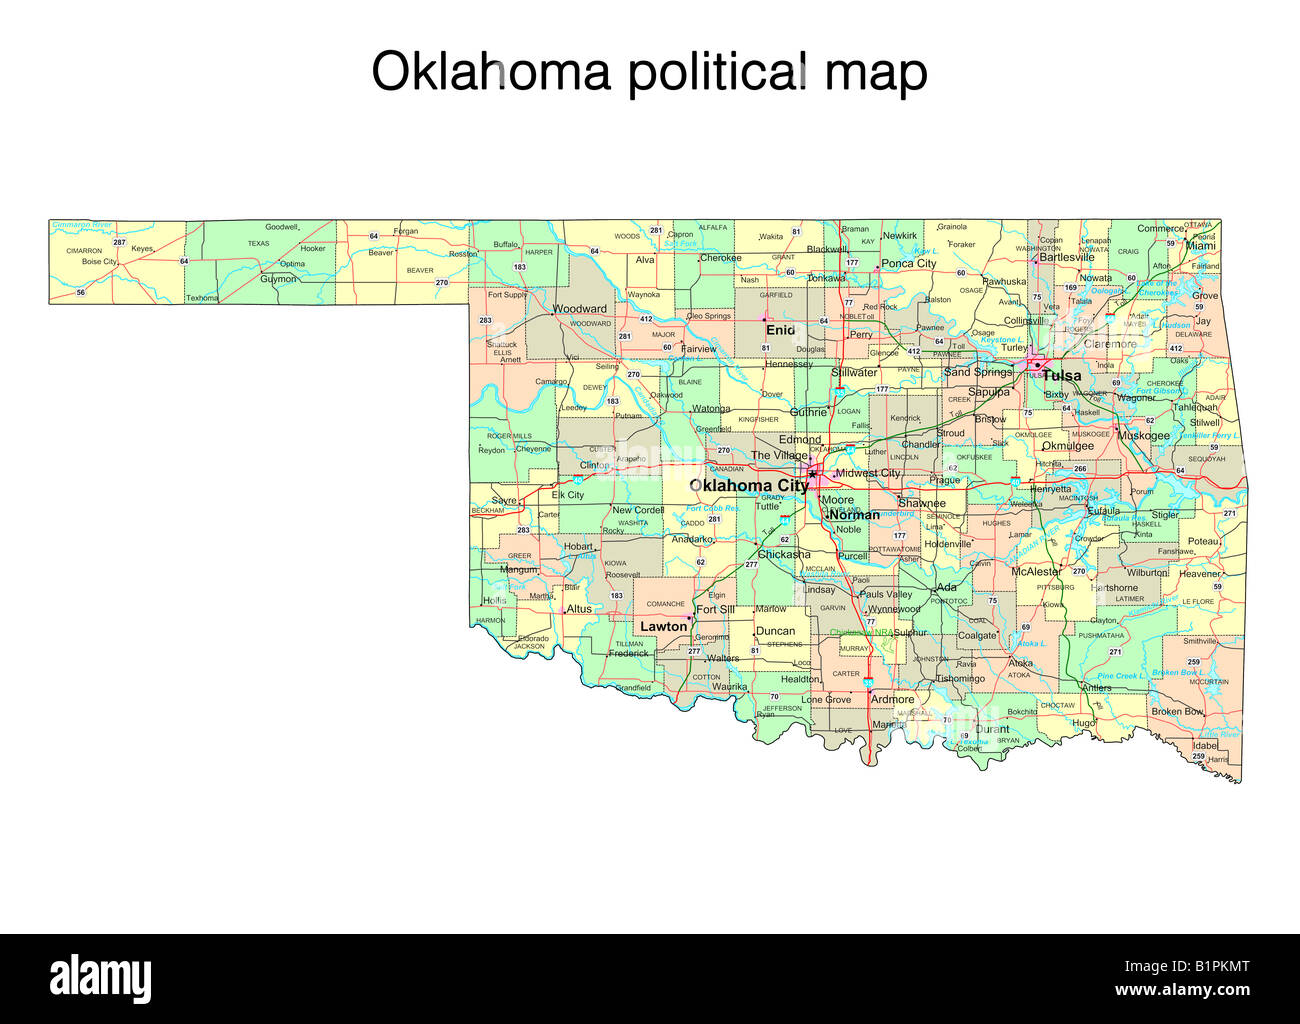 Oklahoma State Political Map Stock Photo 18323448 Alamy